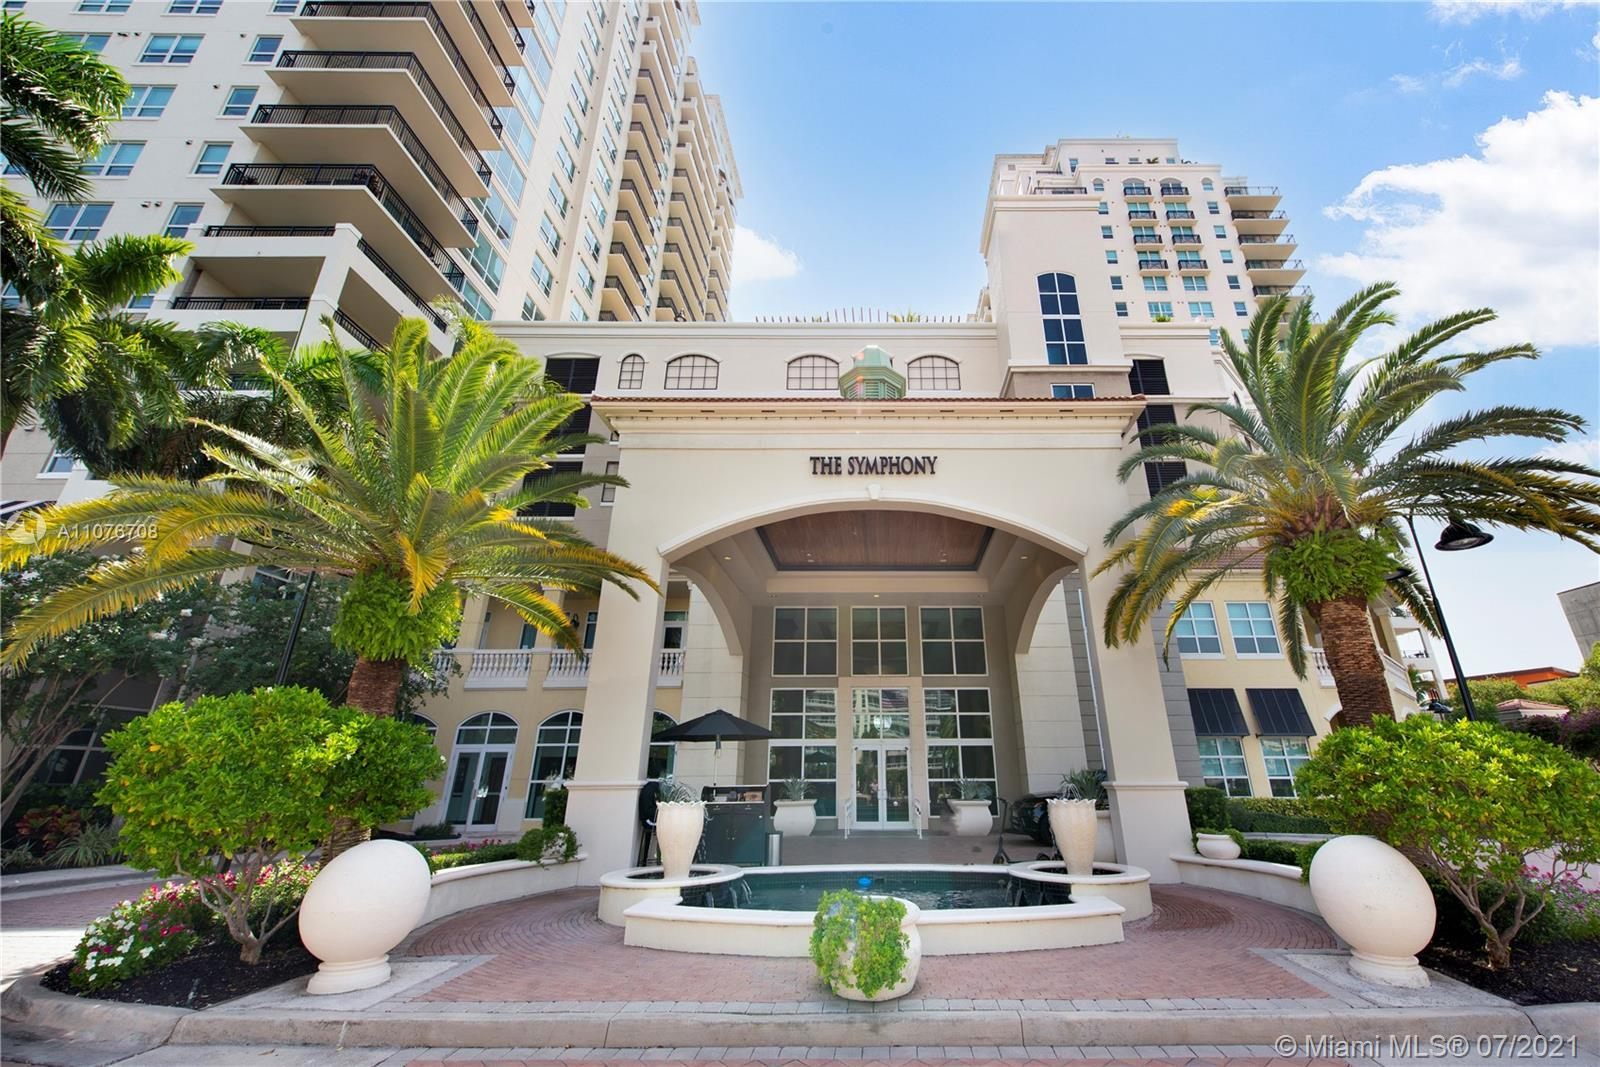 Opportunity to own rarely available one bedroom unit in the Symphony South Tower. This spacious one